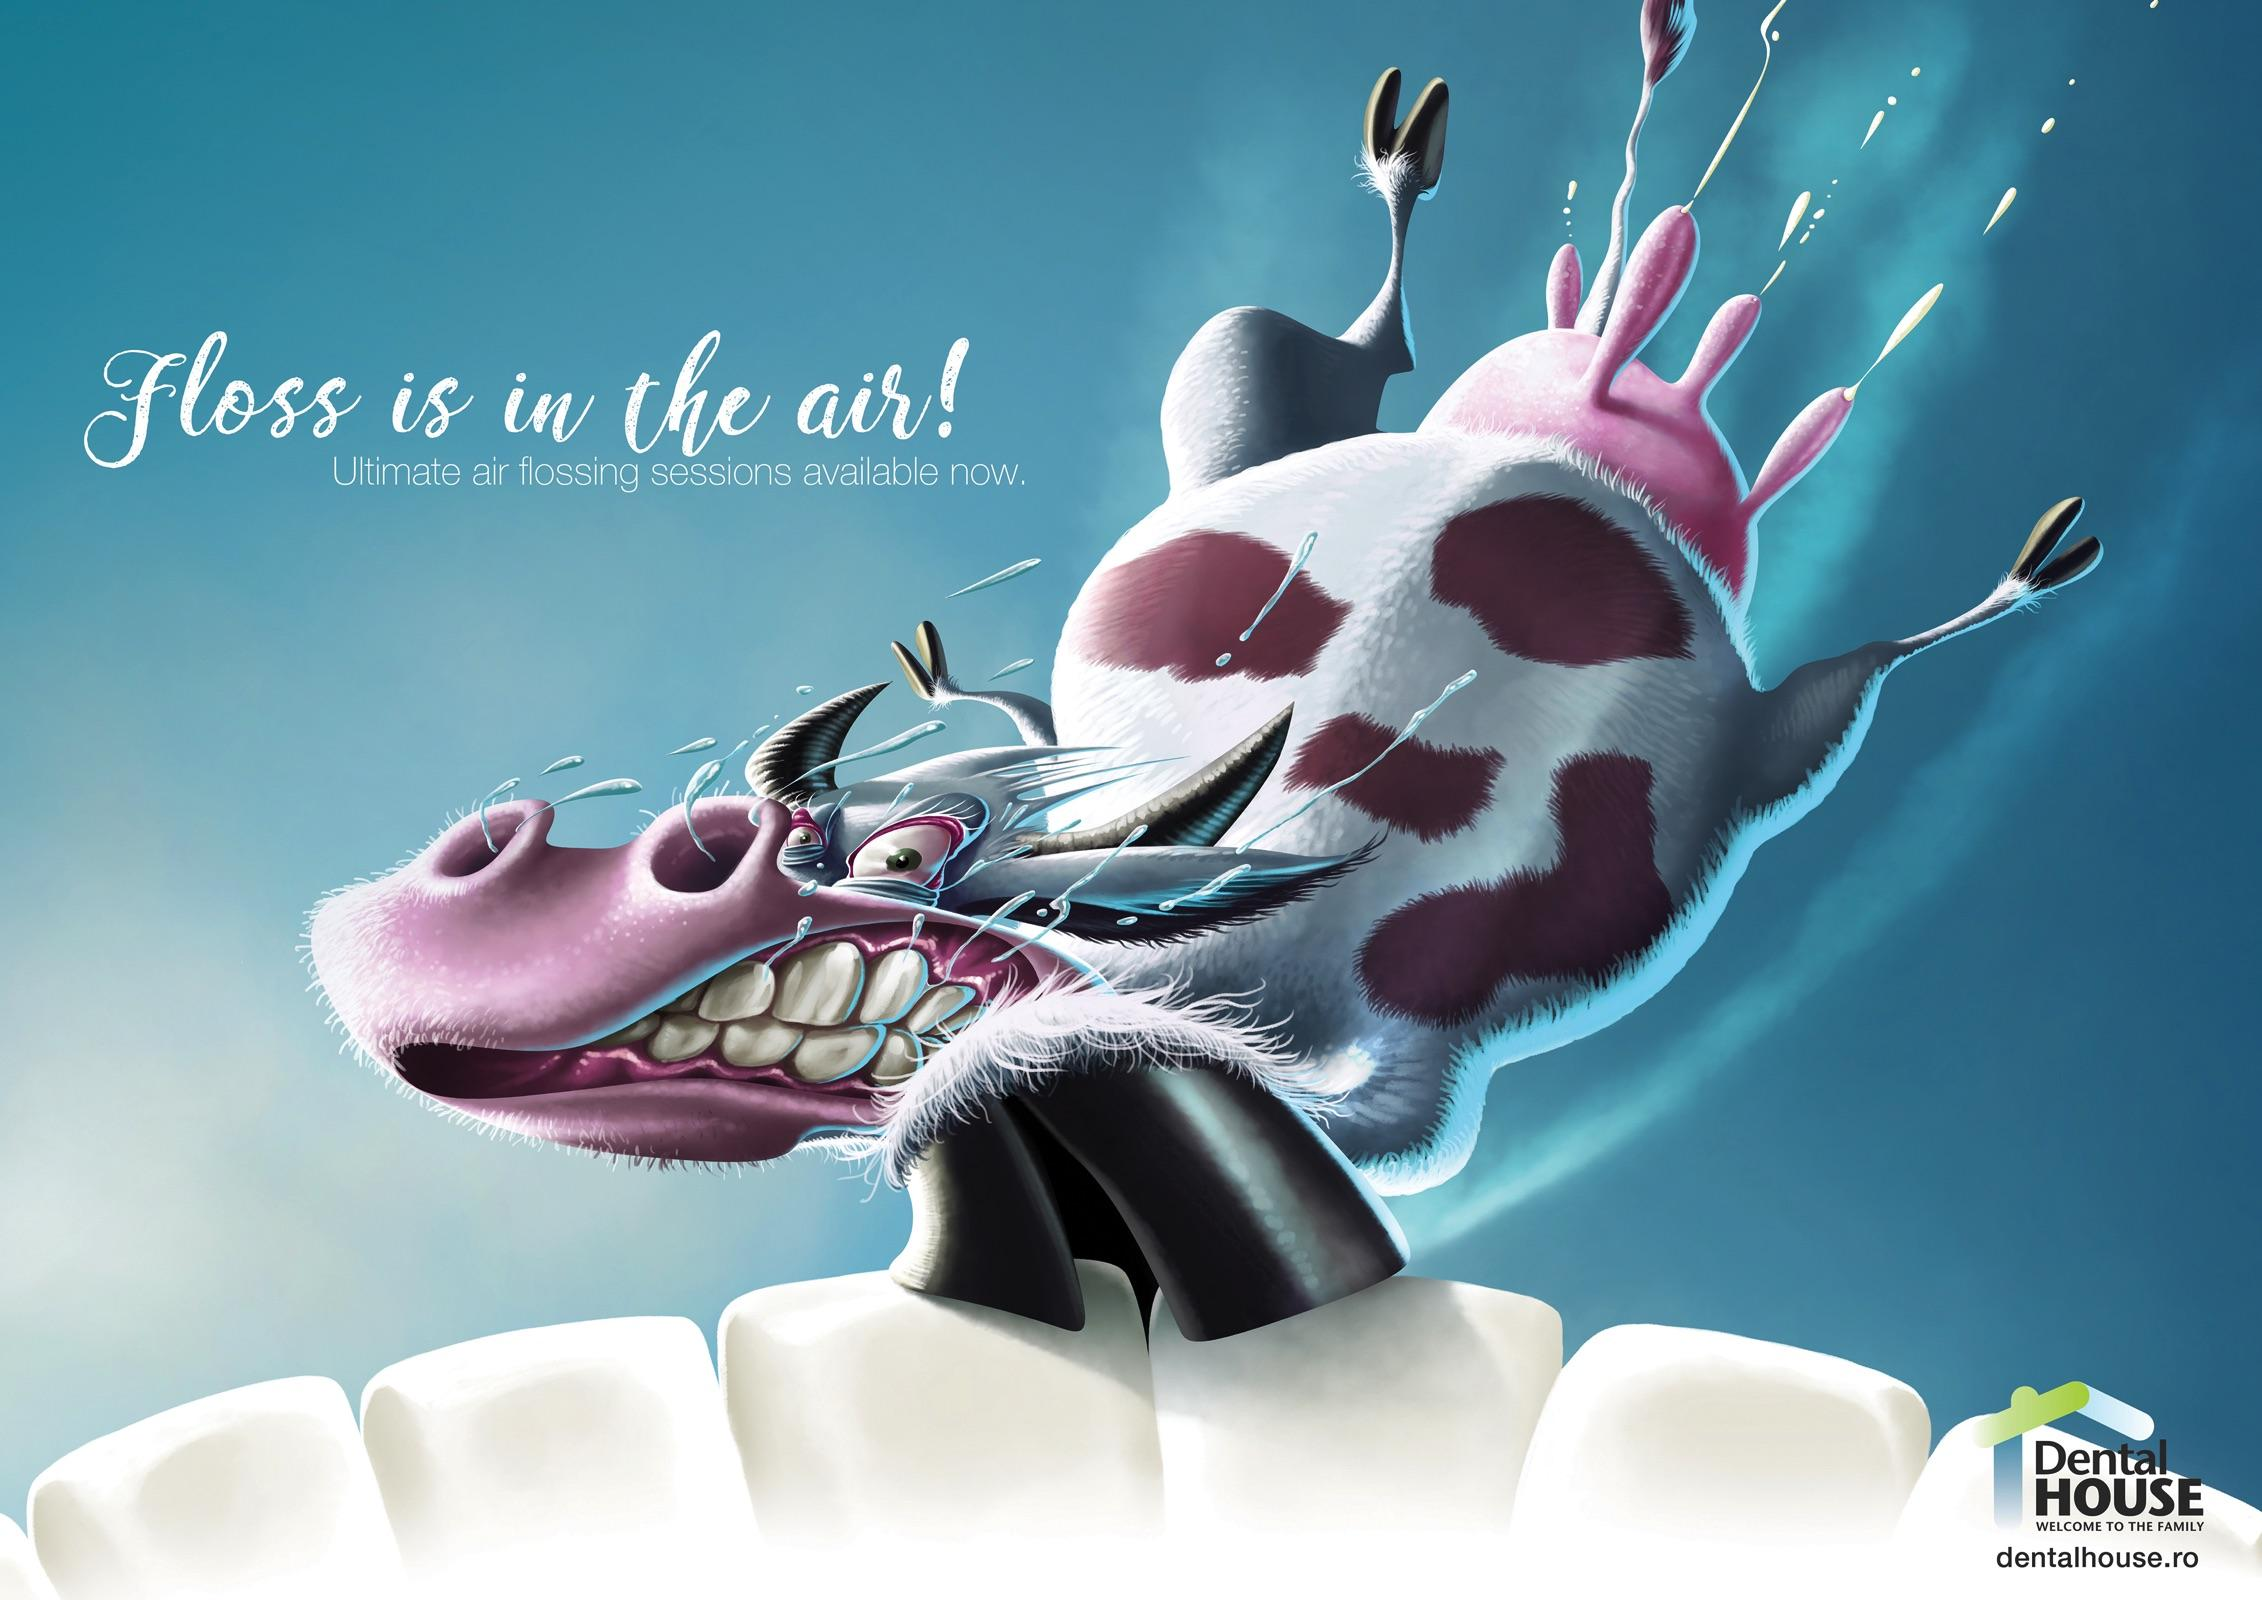 Dental House Print Ad - Floss Is In the Air - Cow